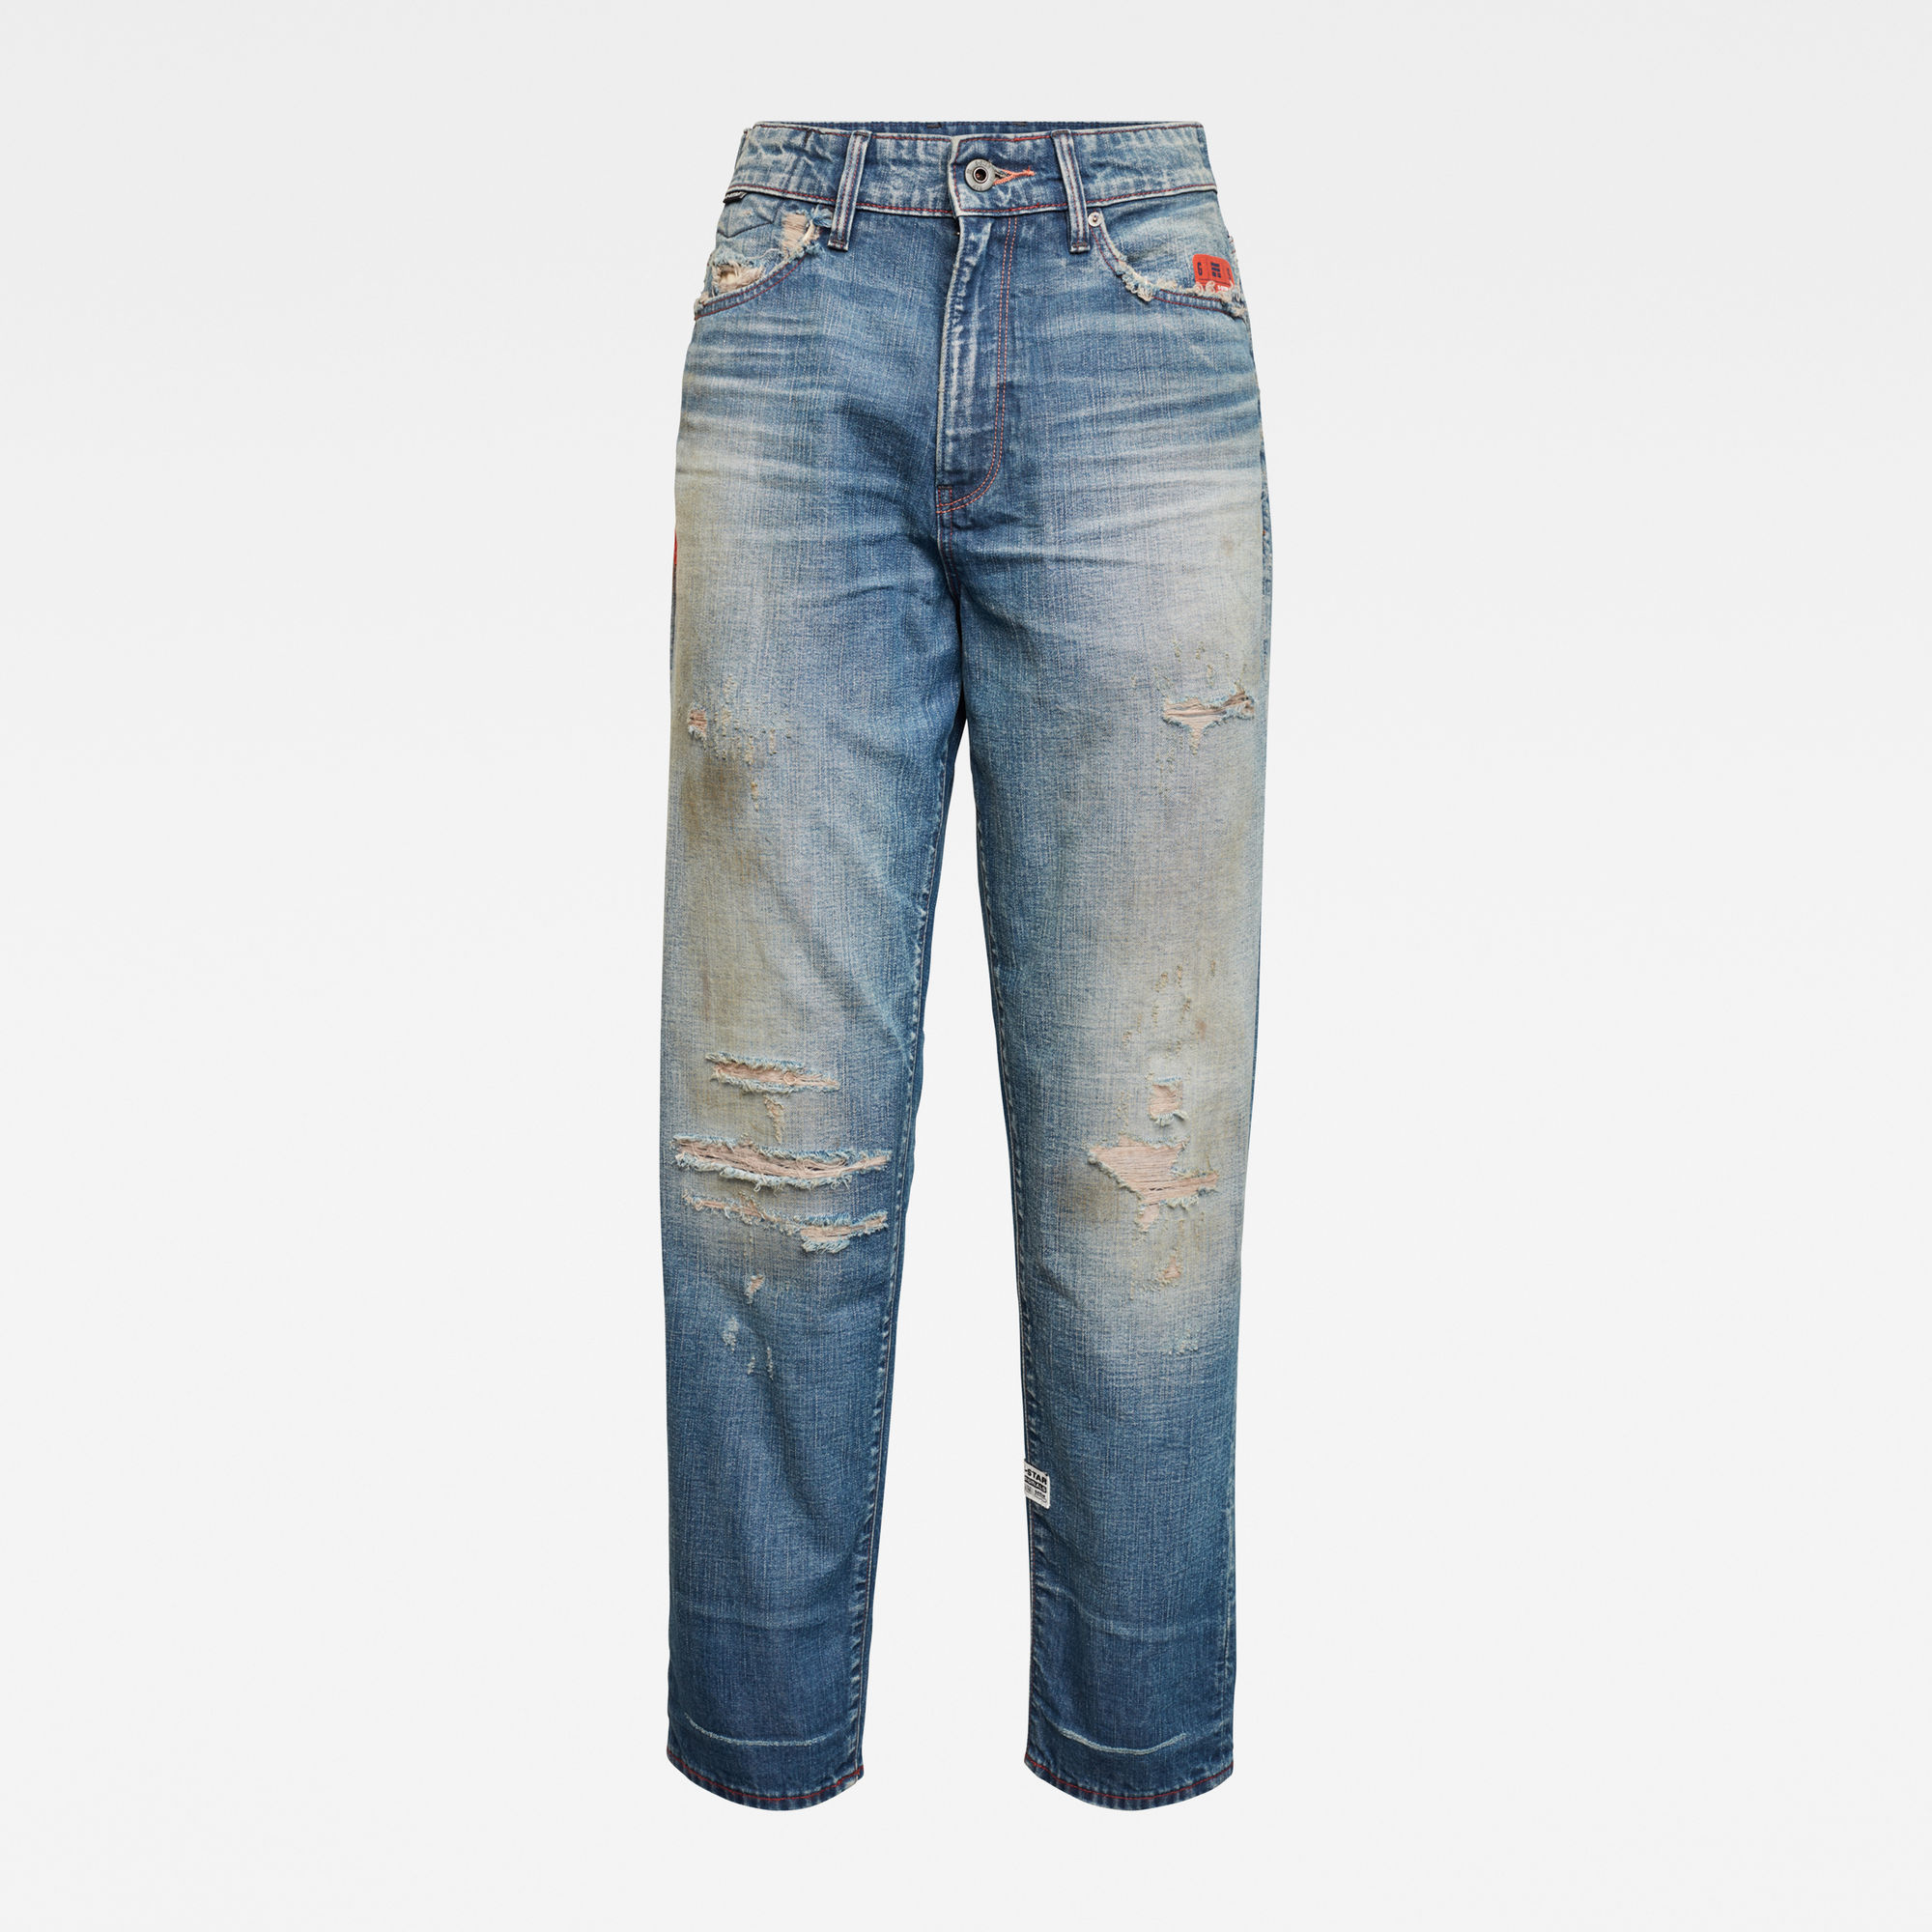 G-Star RAW Dames E Janeh Ultra High Mom Ankle Jeans Blauw